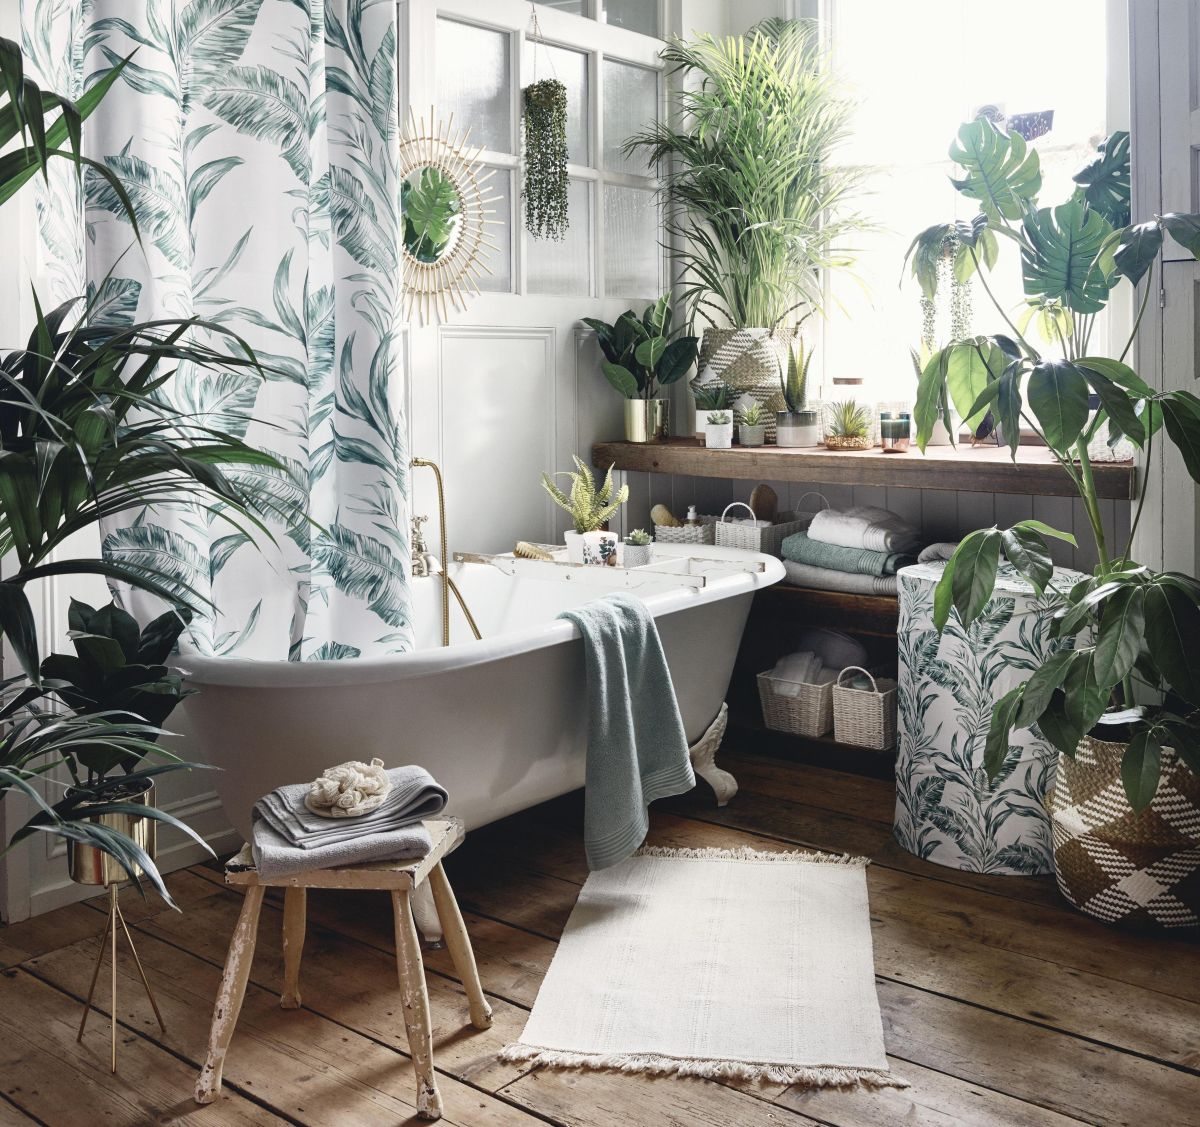 Bathroom need a quick update? Primark Home has you covered!